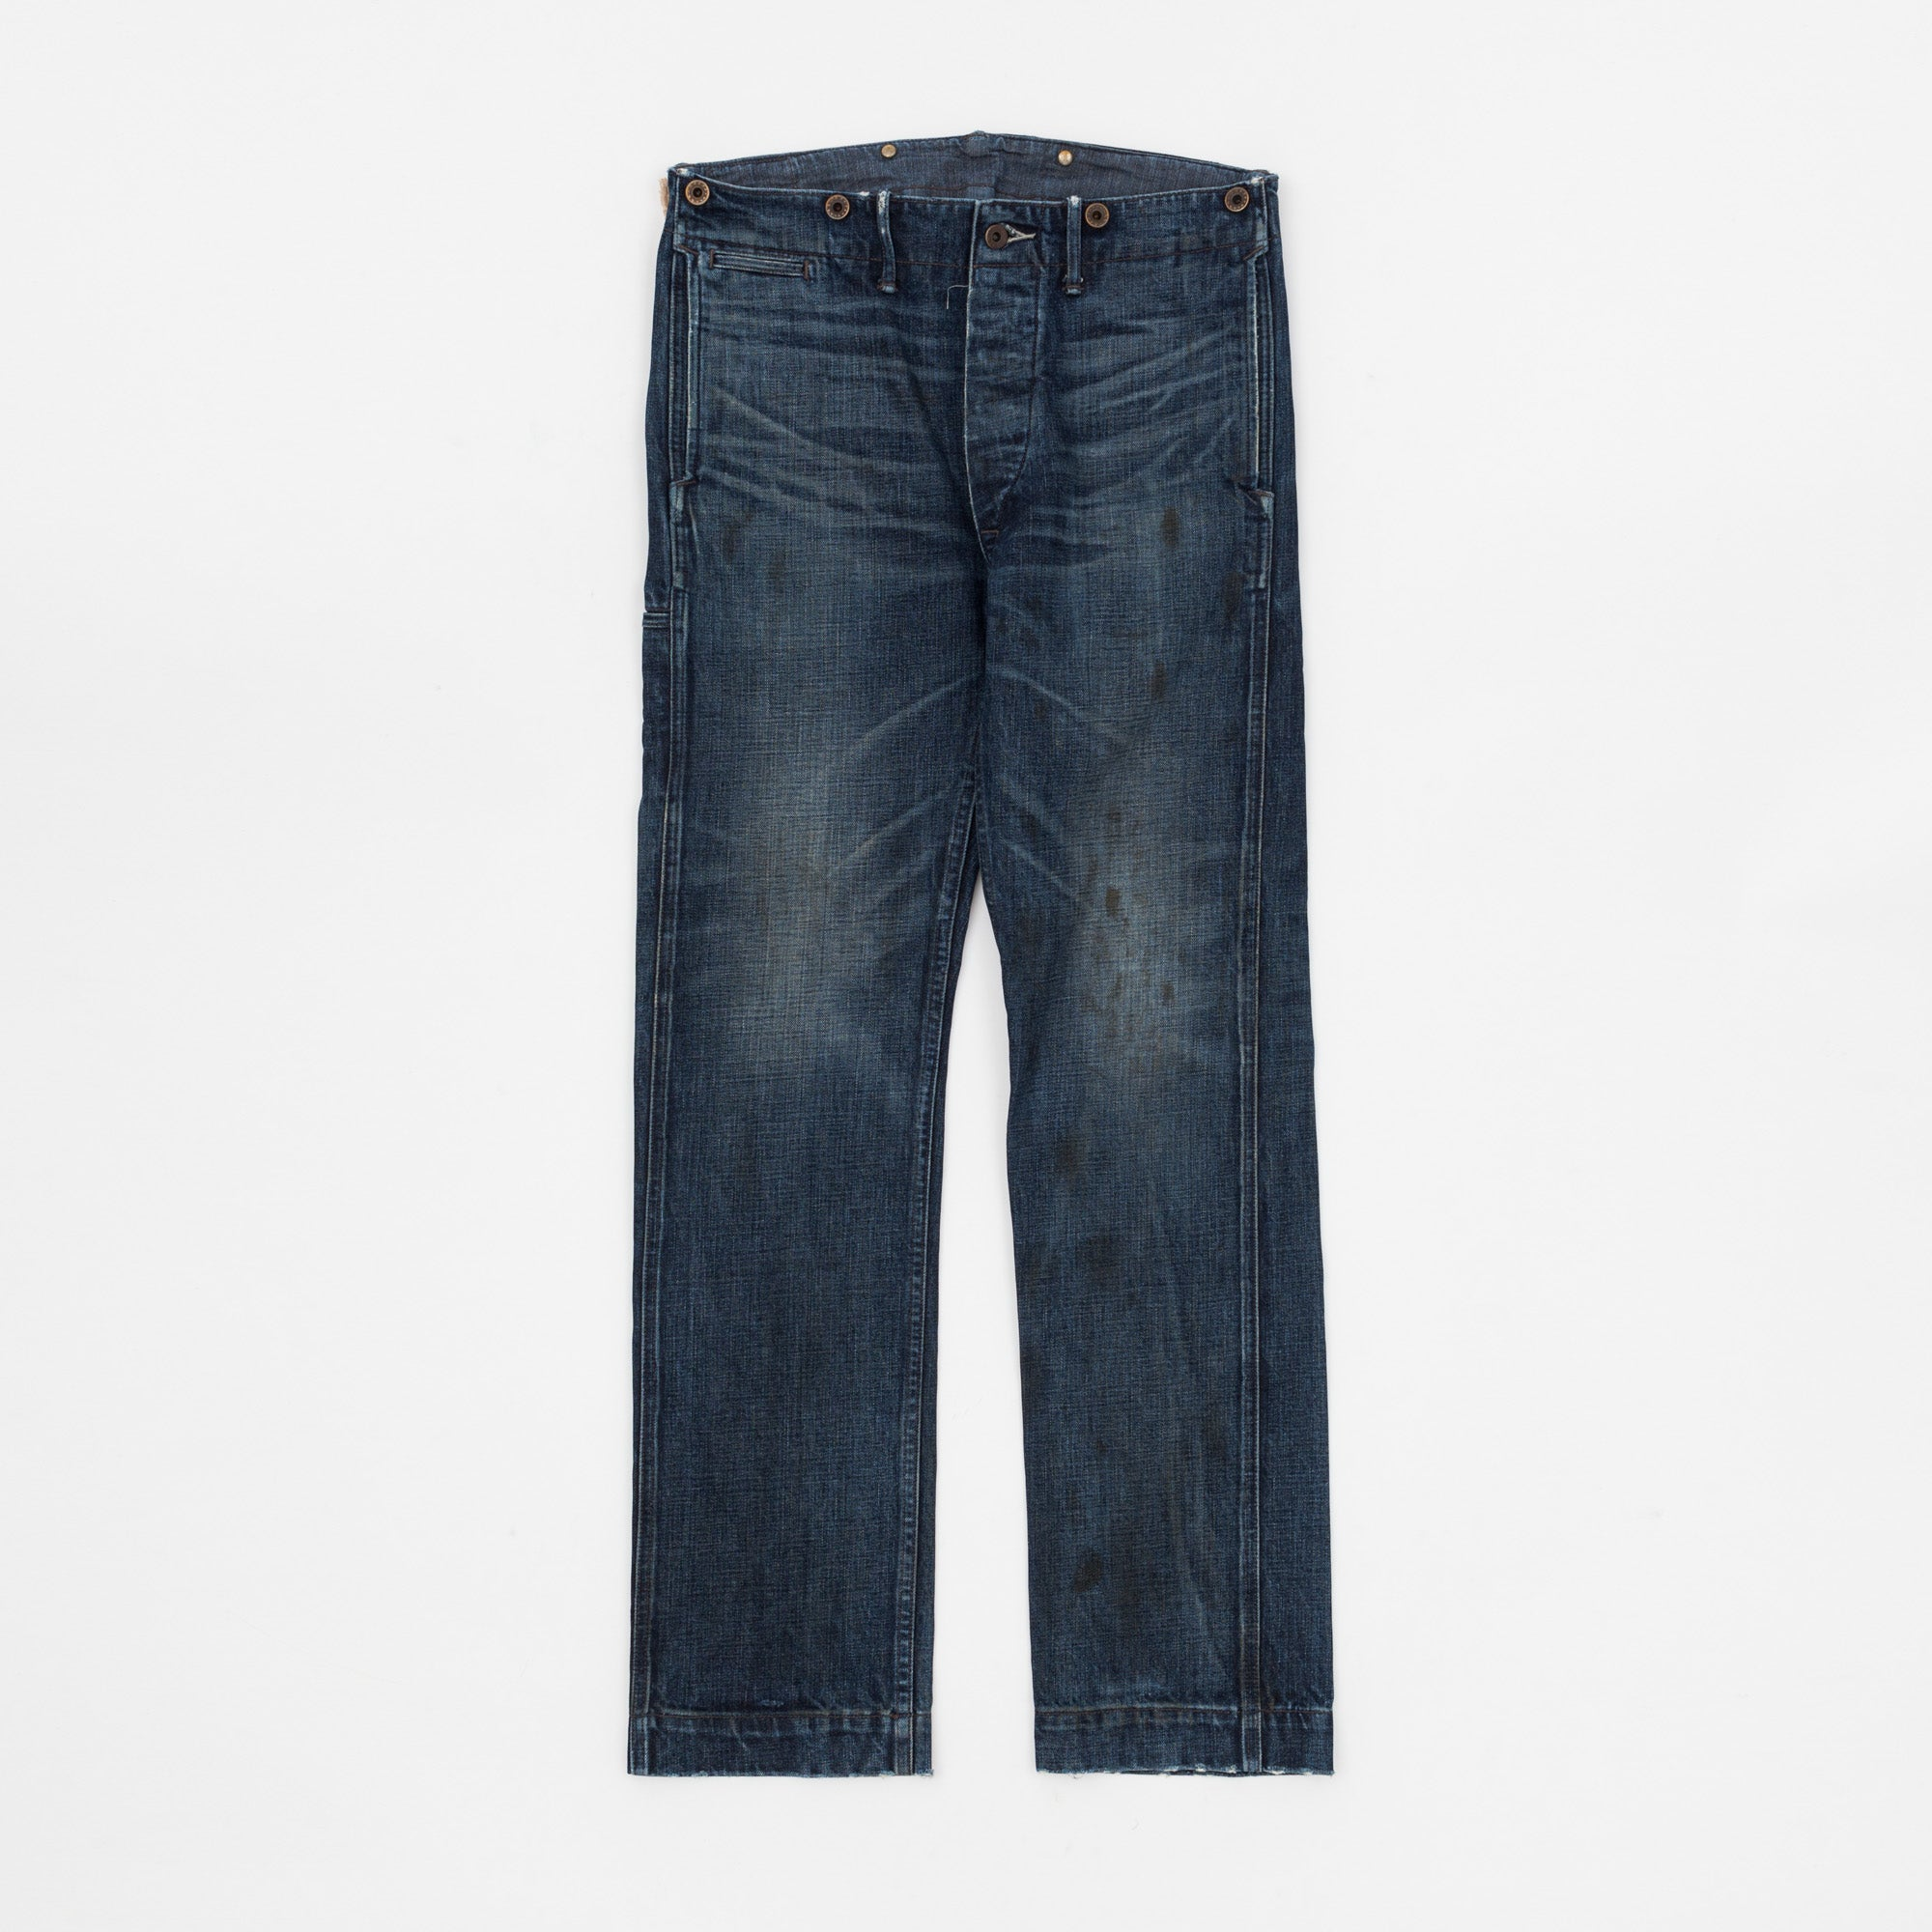 15oz Selvedge Denim Naval Pant